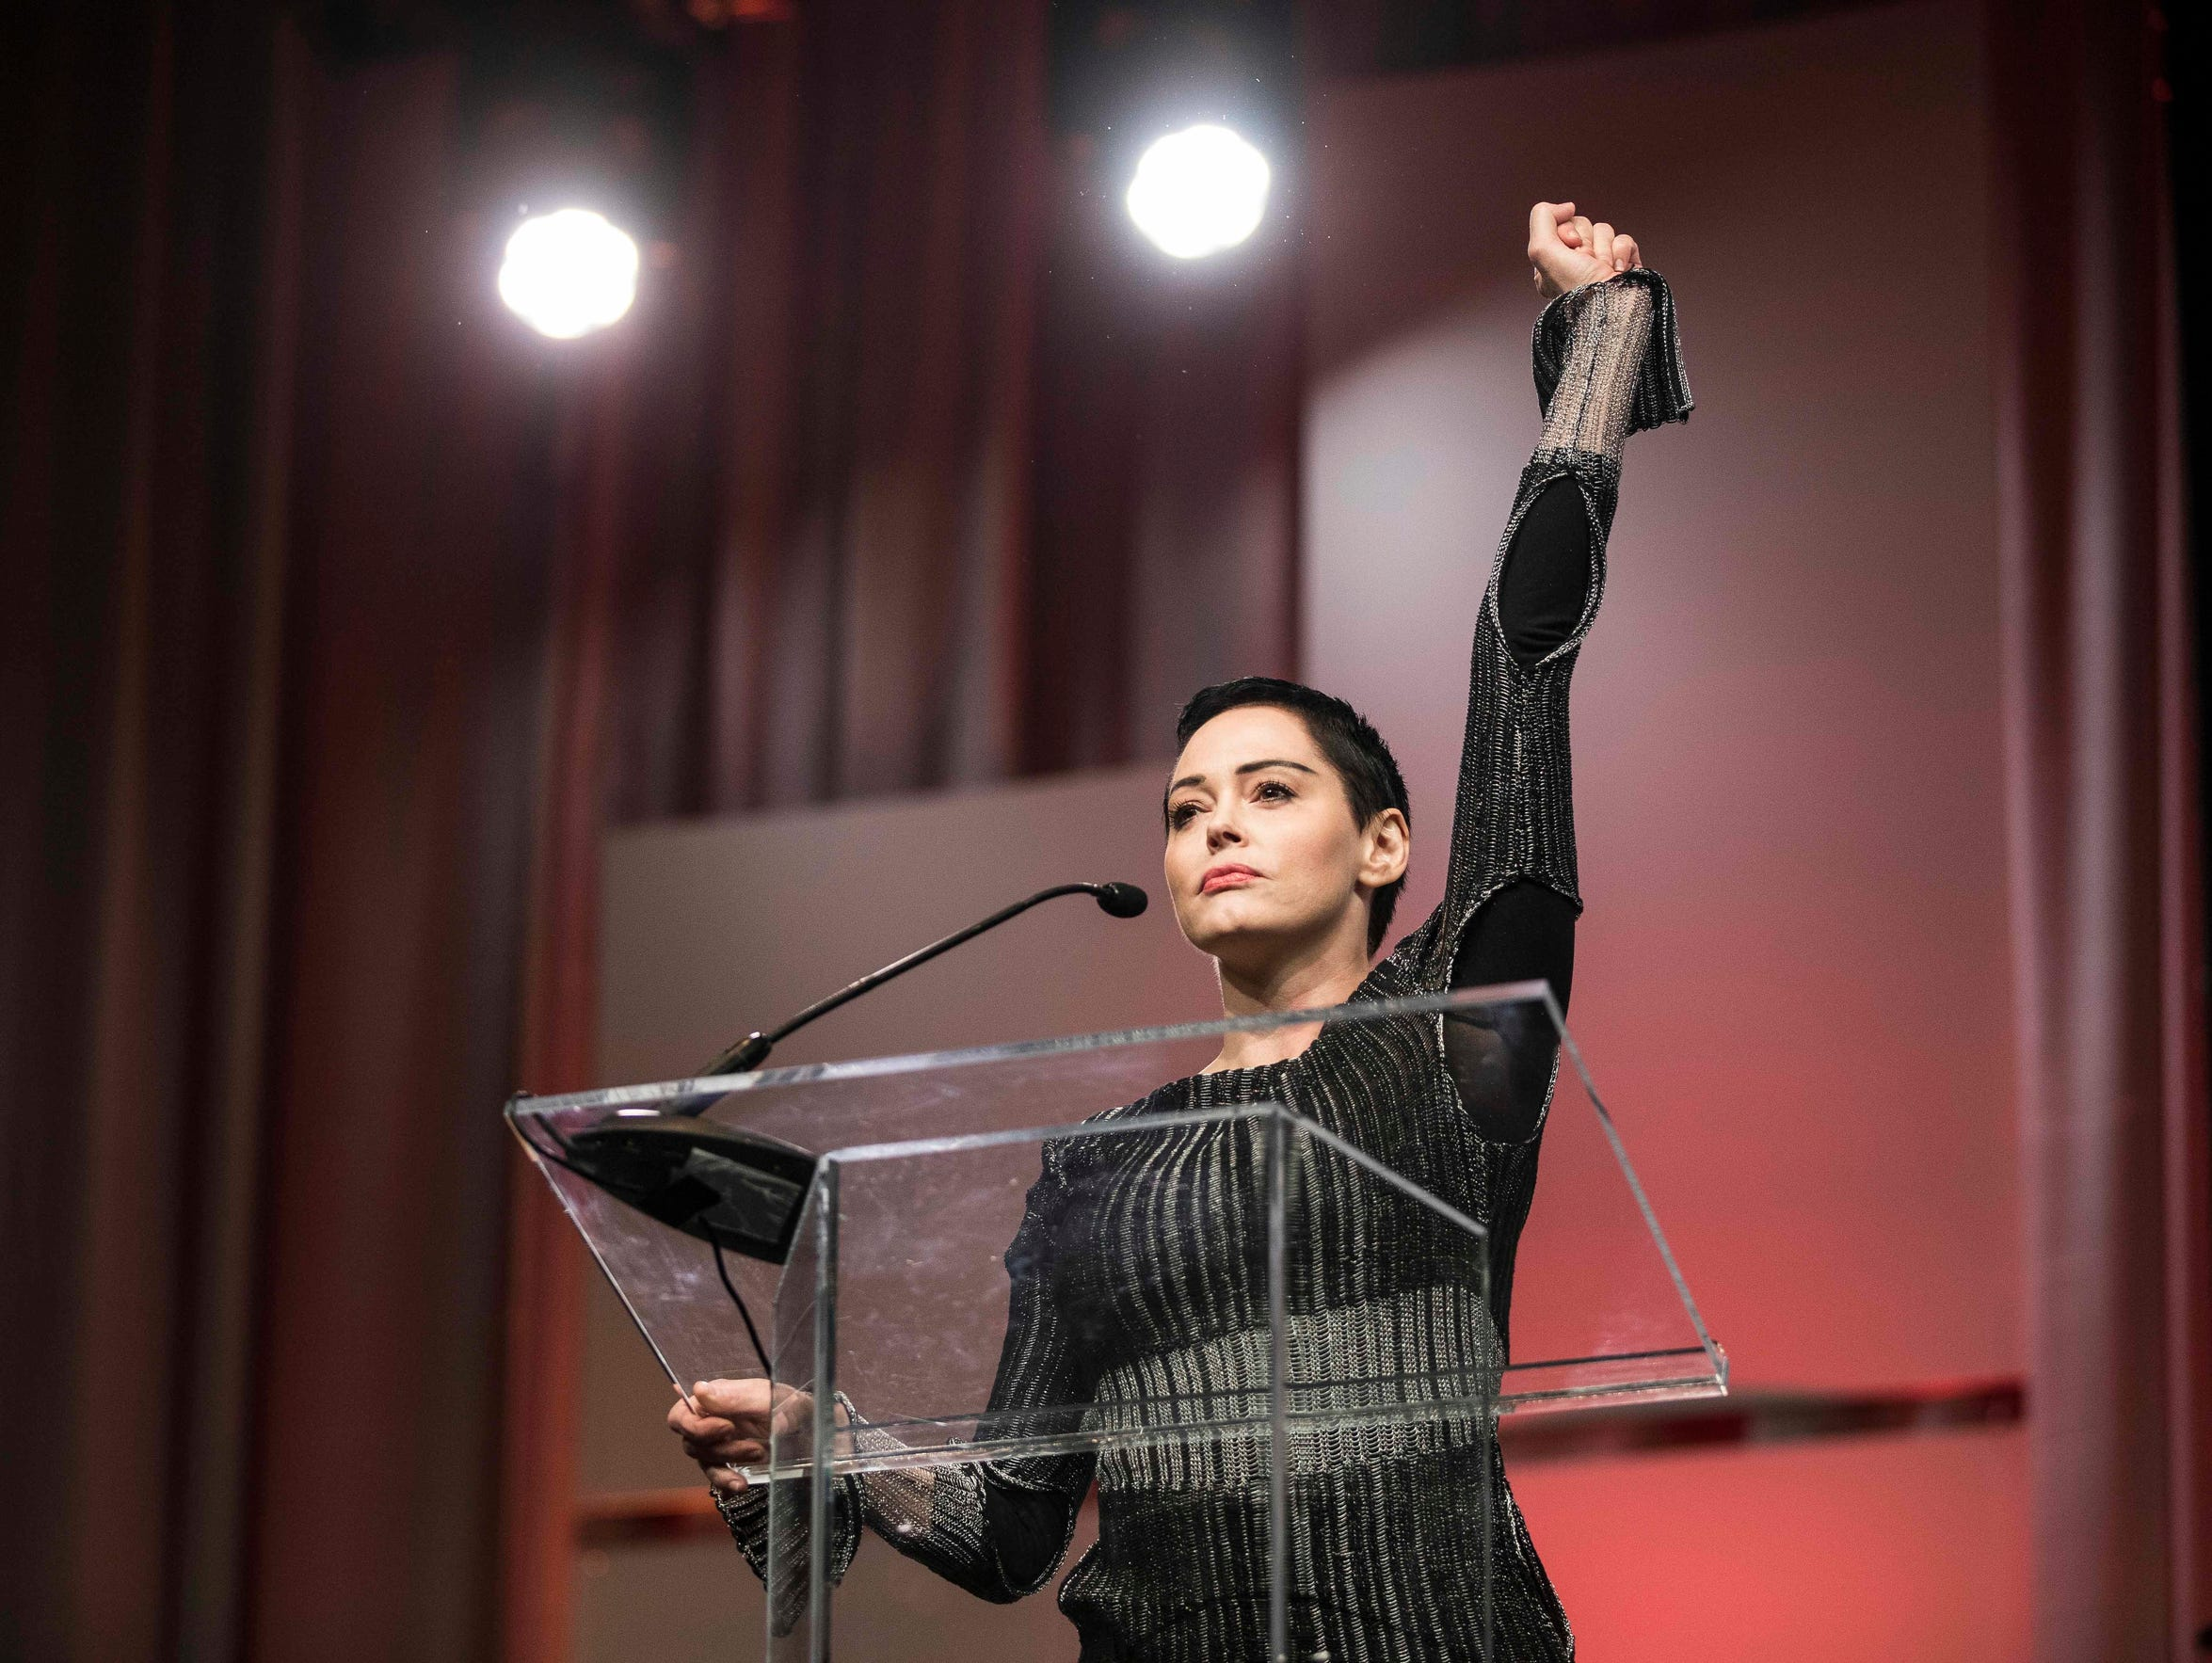 """""""We are all Me Toos. I have been silenced for 20 years,"""" Rose McGowan shouted, fist raised, in a fiery speech at the Women's Convention in Detroit. """"I have been slut-shamed. I've been harassed. I've been maligned … We are one massive collective voice, that is what #RoseArmy is all about."""""""